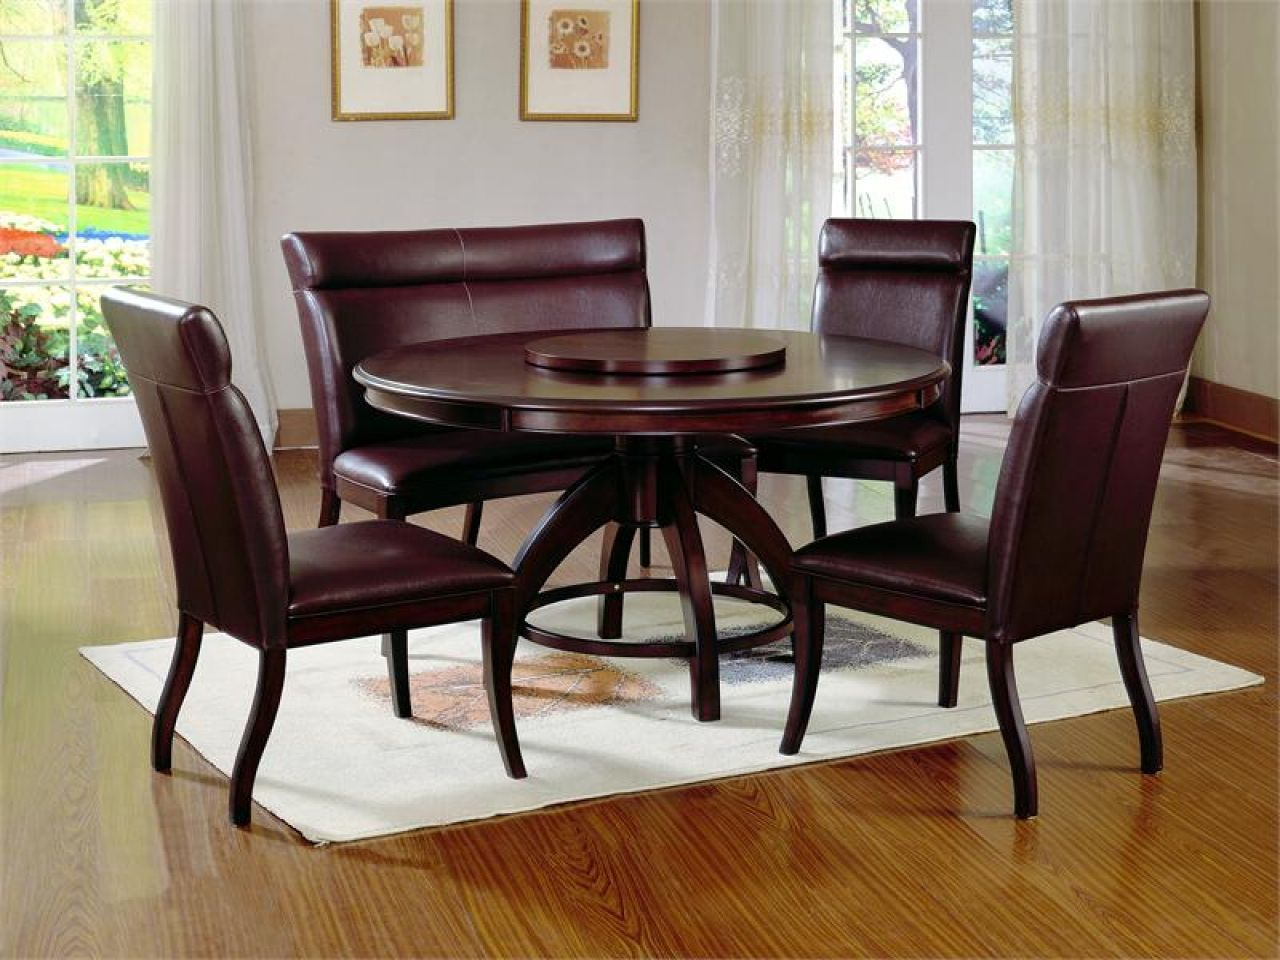 Luxurious Dining Room Sets Folding Tables Costco Round Table